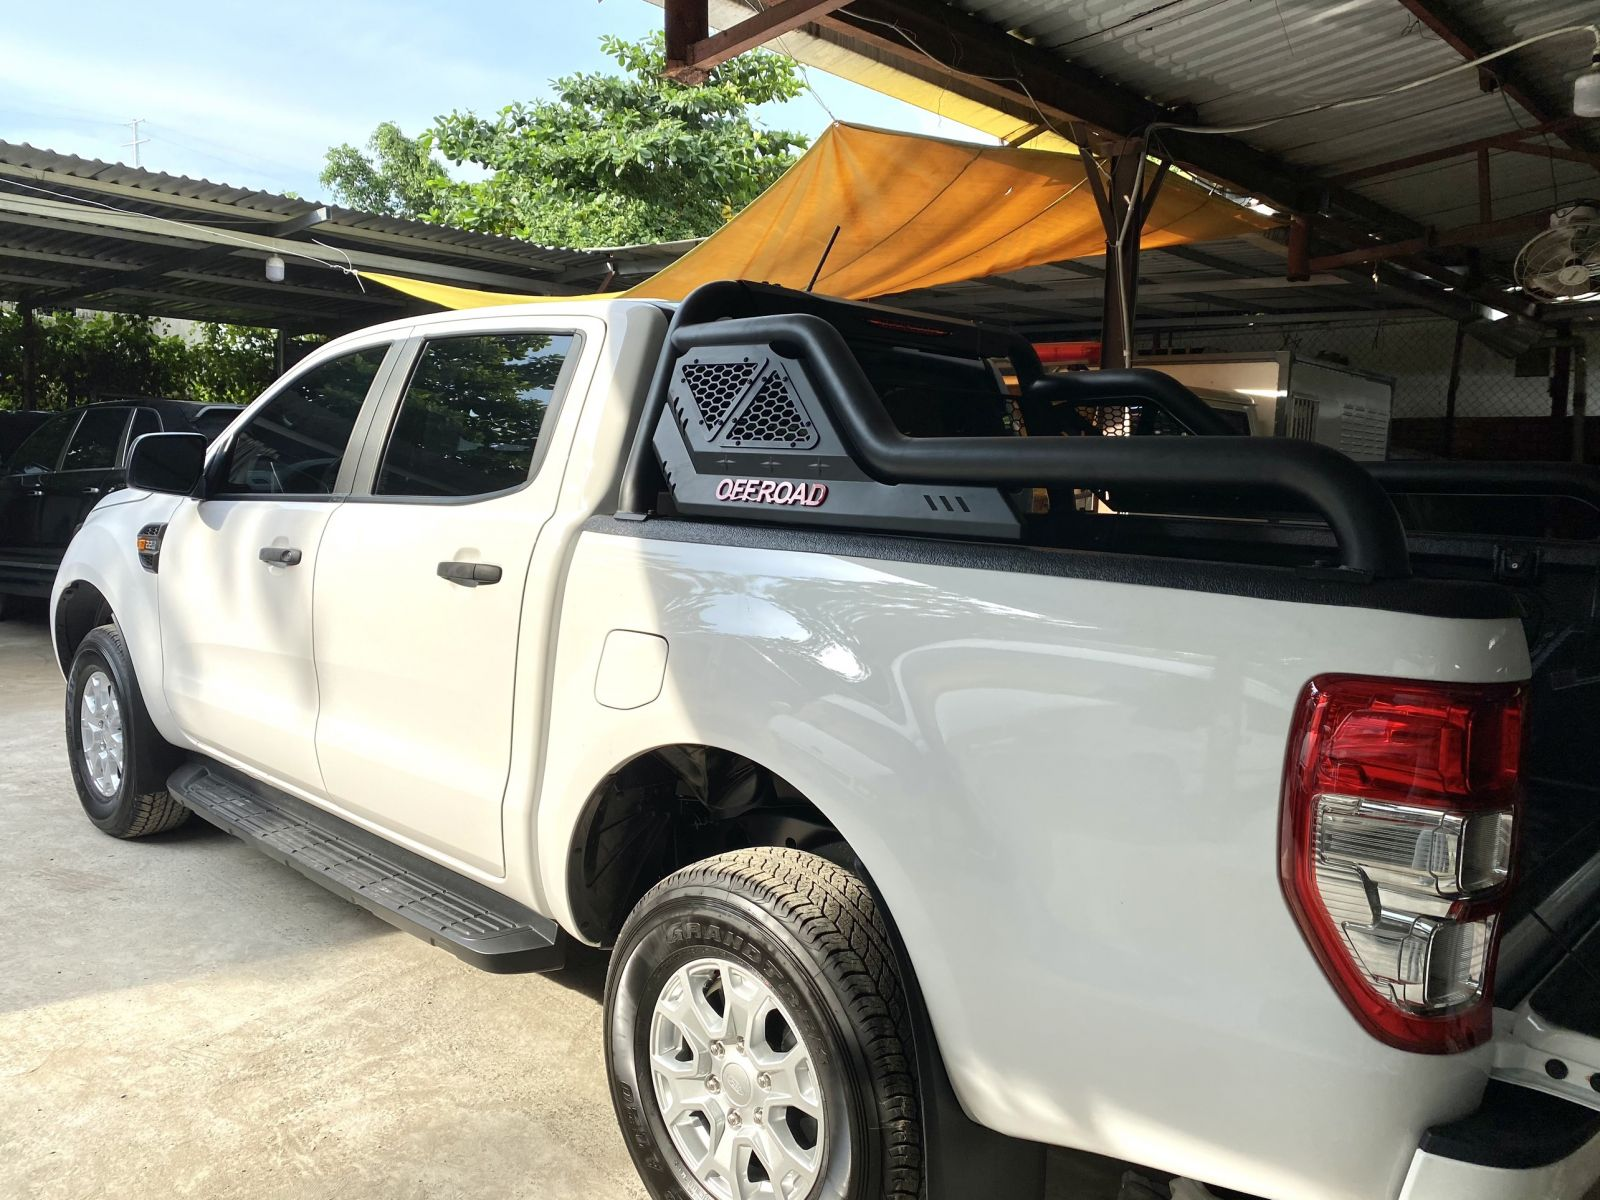 Thanh thể thao Offroad Ford Ranger